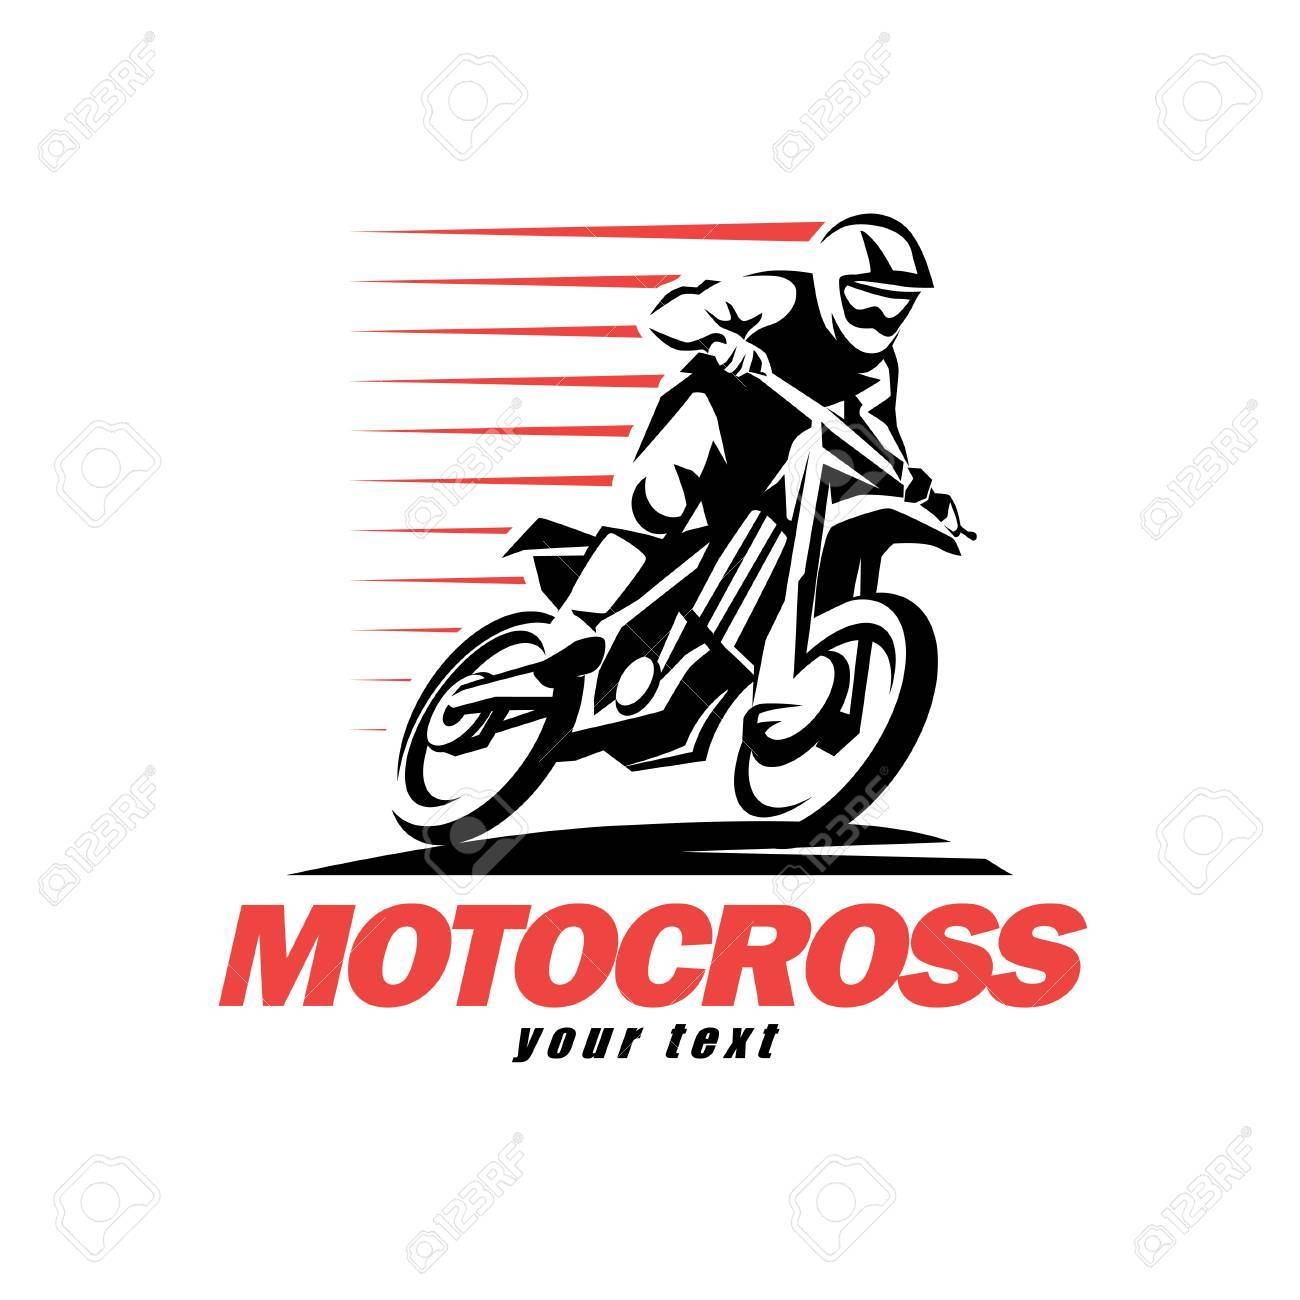 hight resolution of motocross stylized vector symbol design elements for logo template